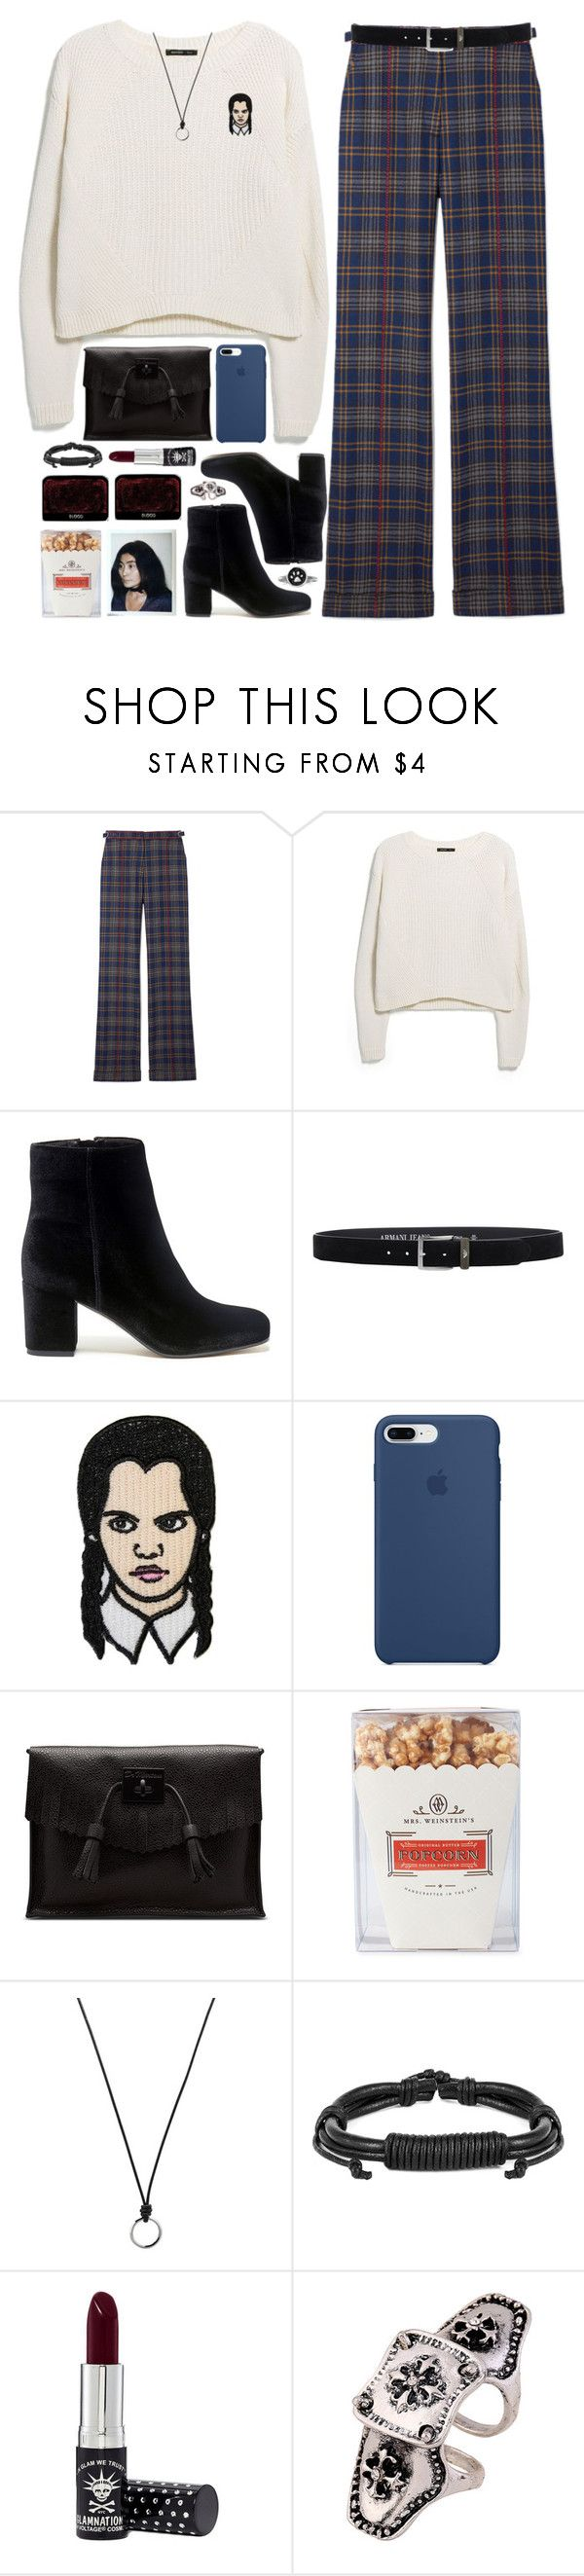 """""""*relax, we are all going to die one day.*"""" by my-black-wings ❤ liked on Polyvore featuring Gabriela Hearst, MANGO, Sole Society, Armani Jeans, Apple, Dr. Martens, Neiman Marcus, FOSSIL, West Coast Jewelry and WithChic"""